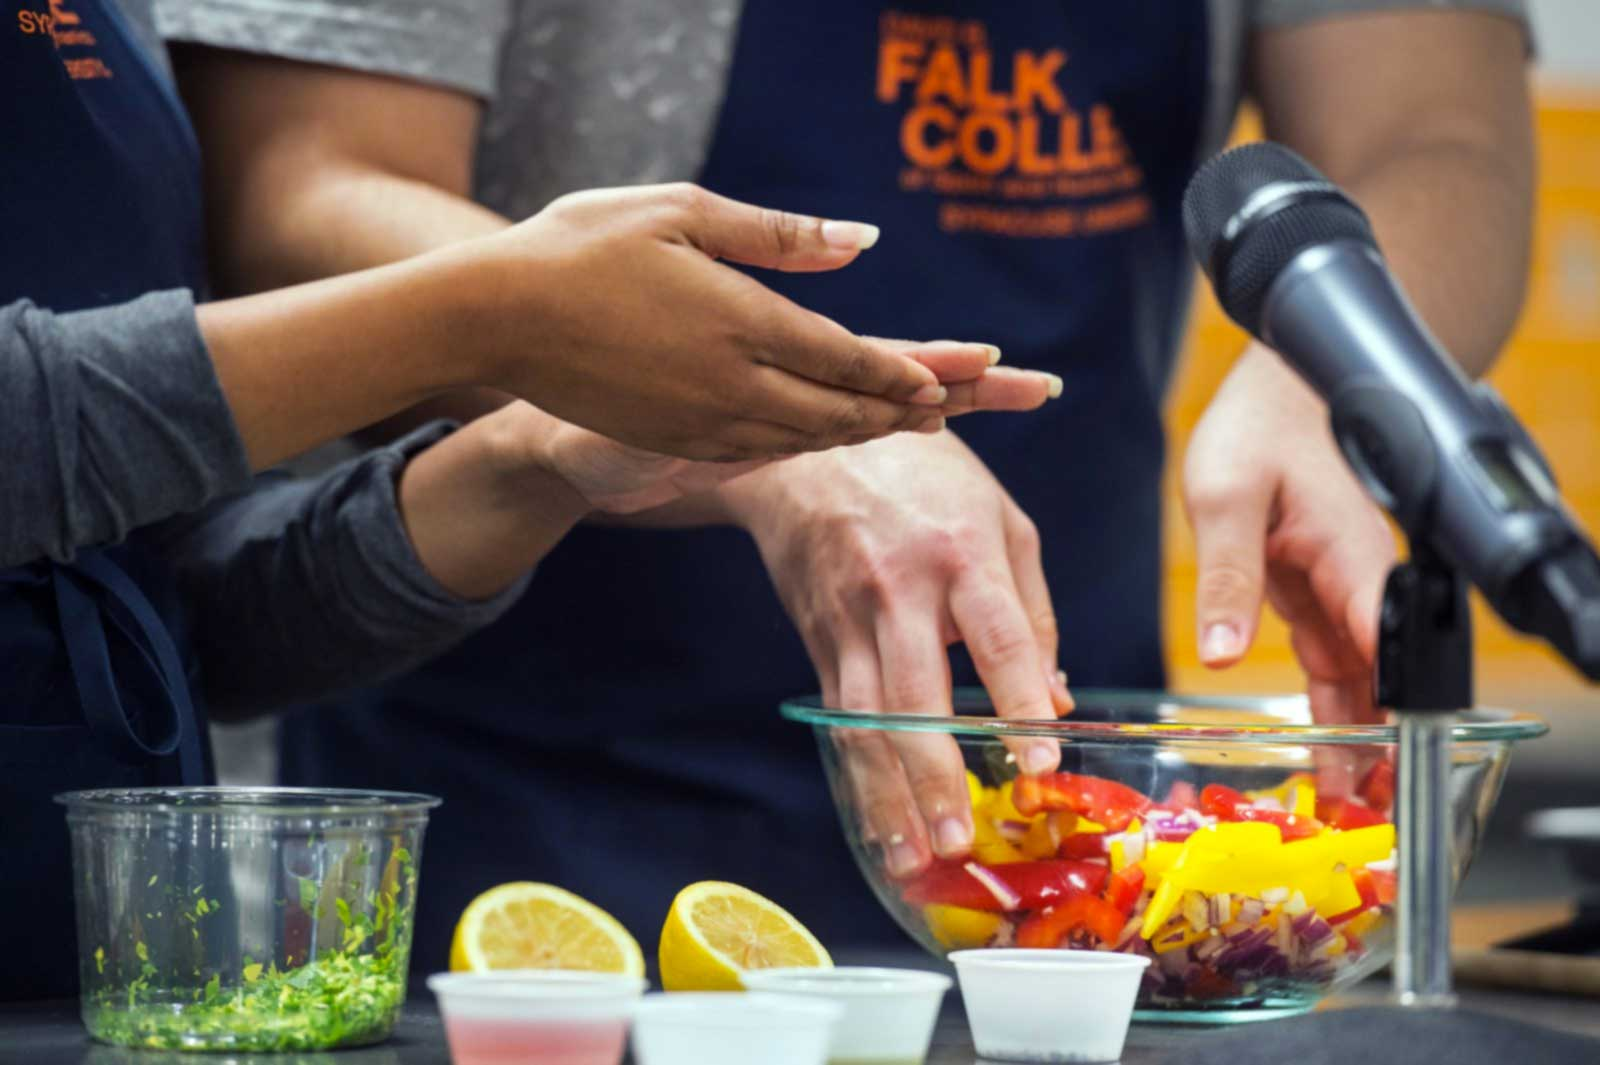 A close up of students hands working with food